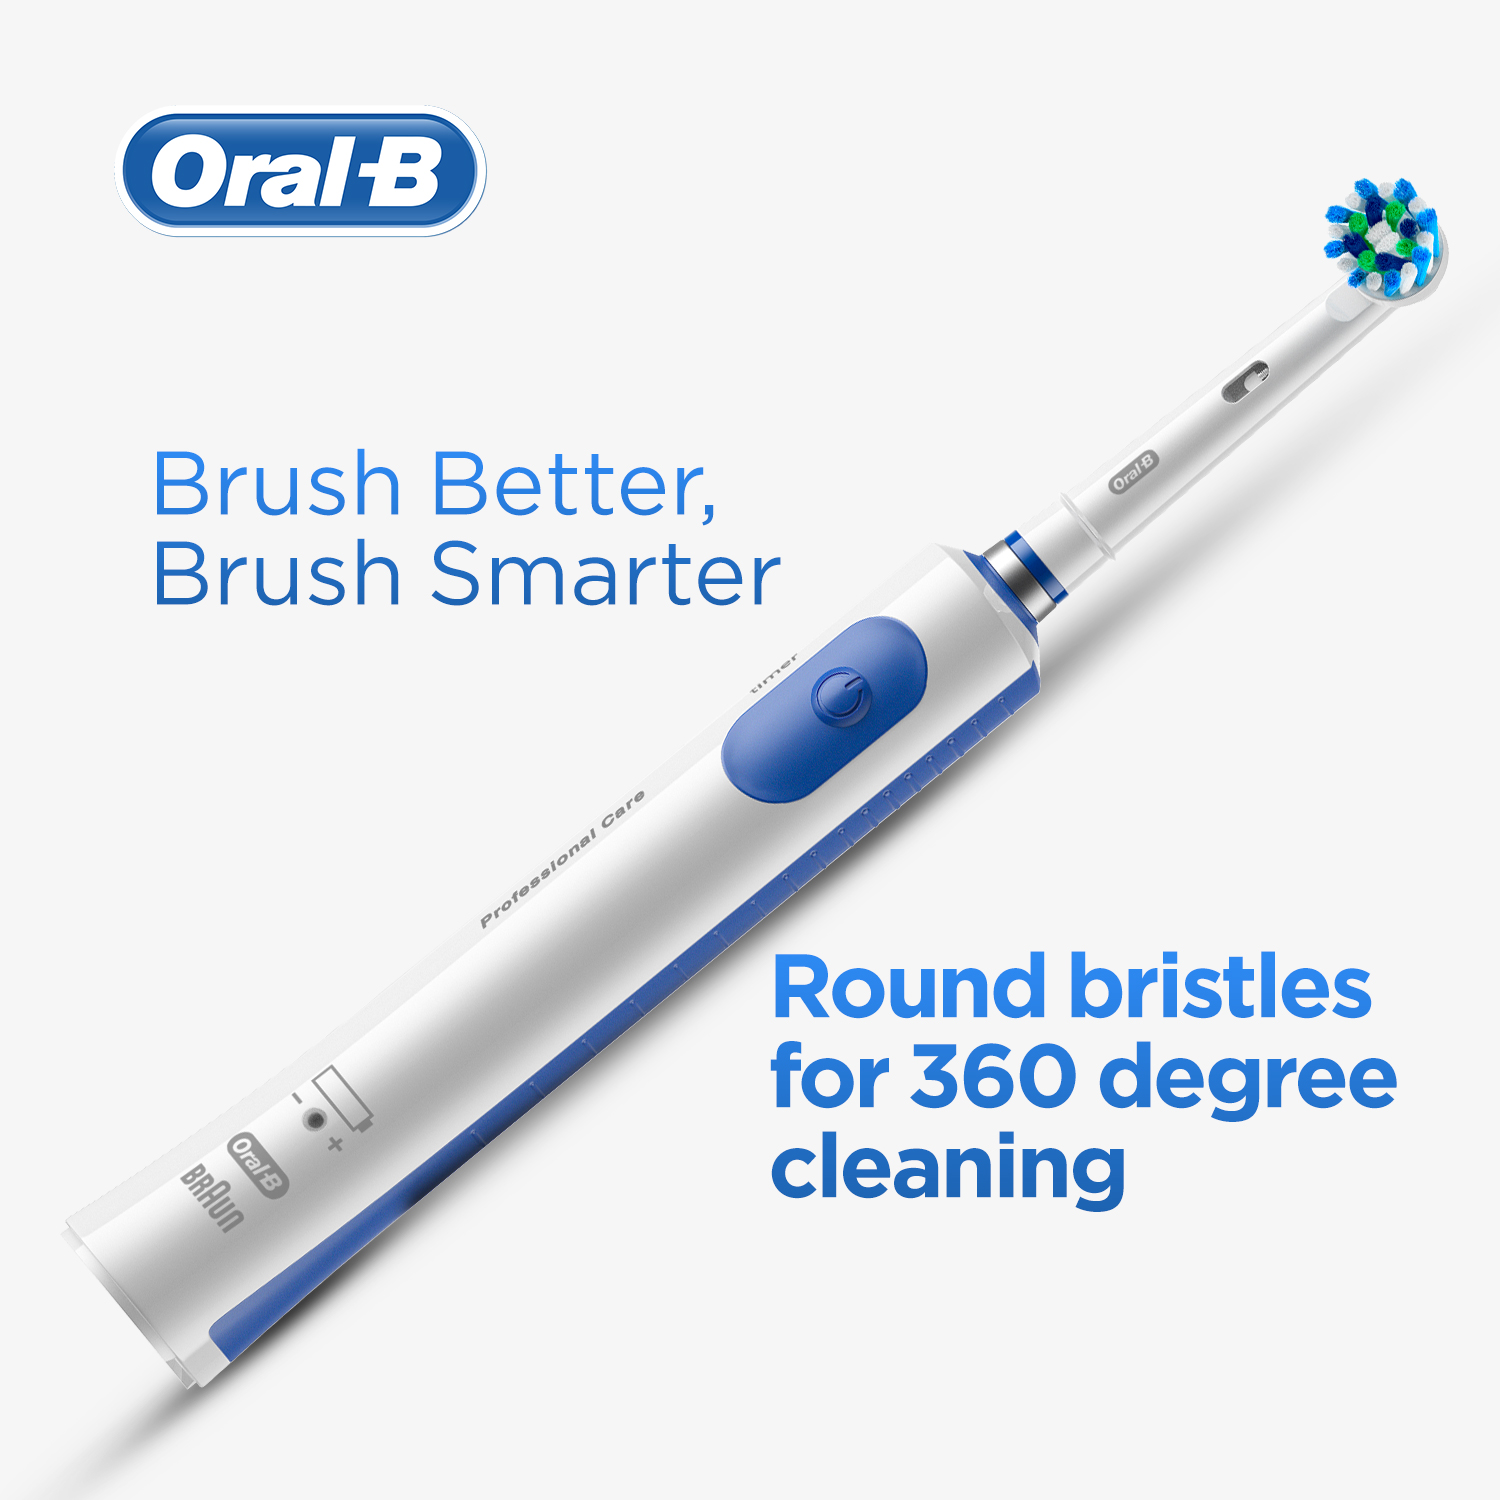 Pro 600 Electric Toothbrush with Cross Action Bristles_Rechargeable